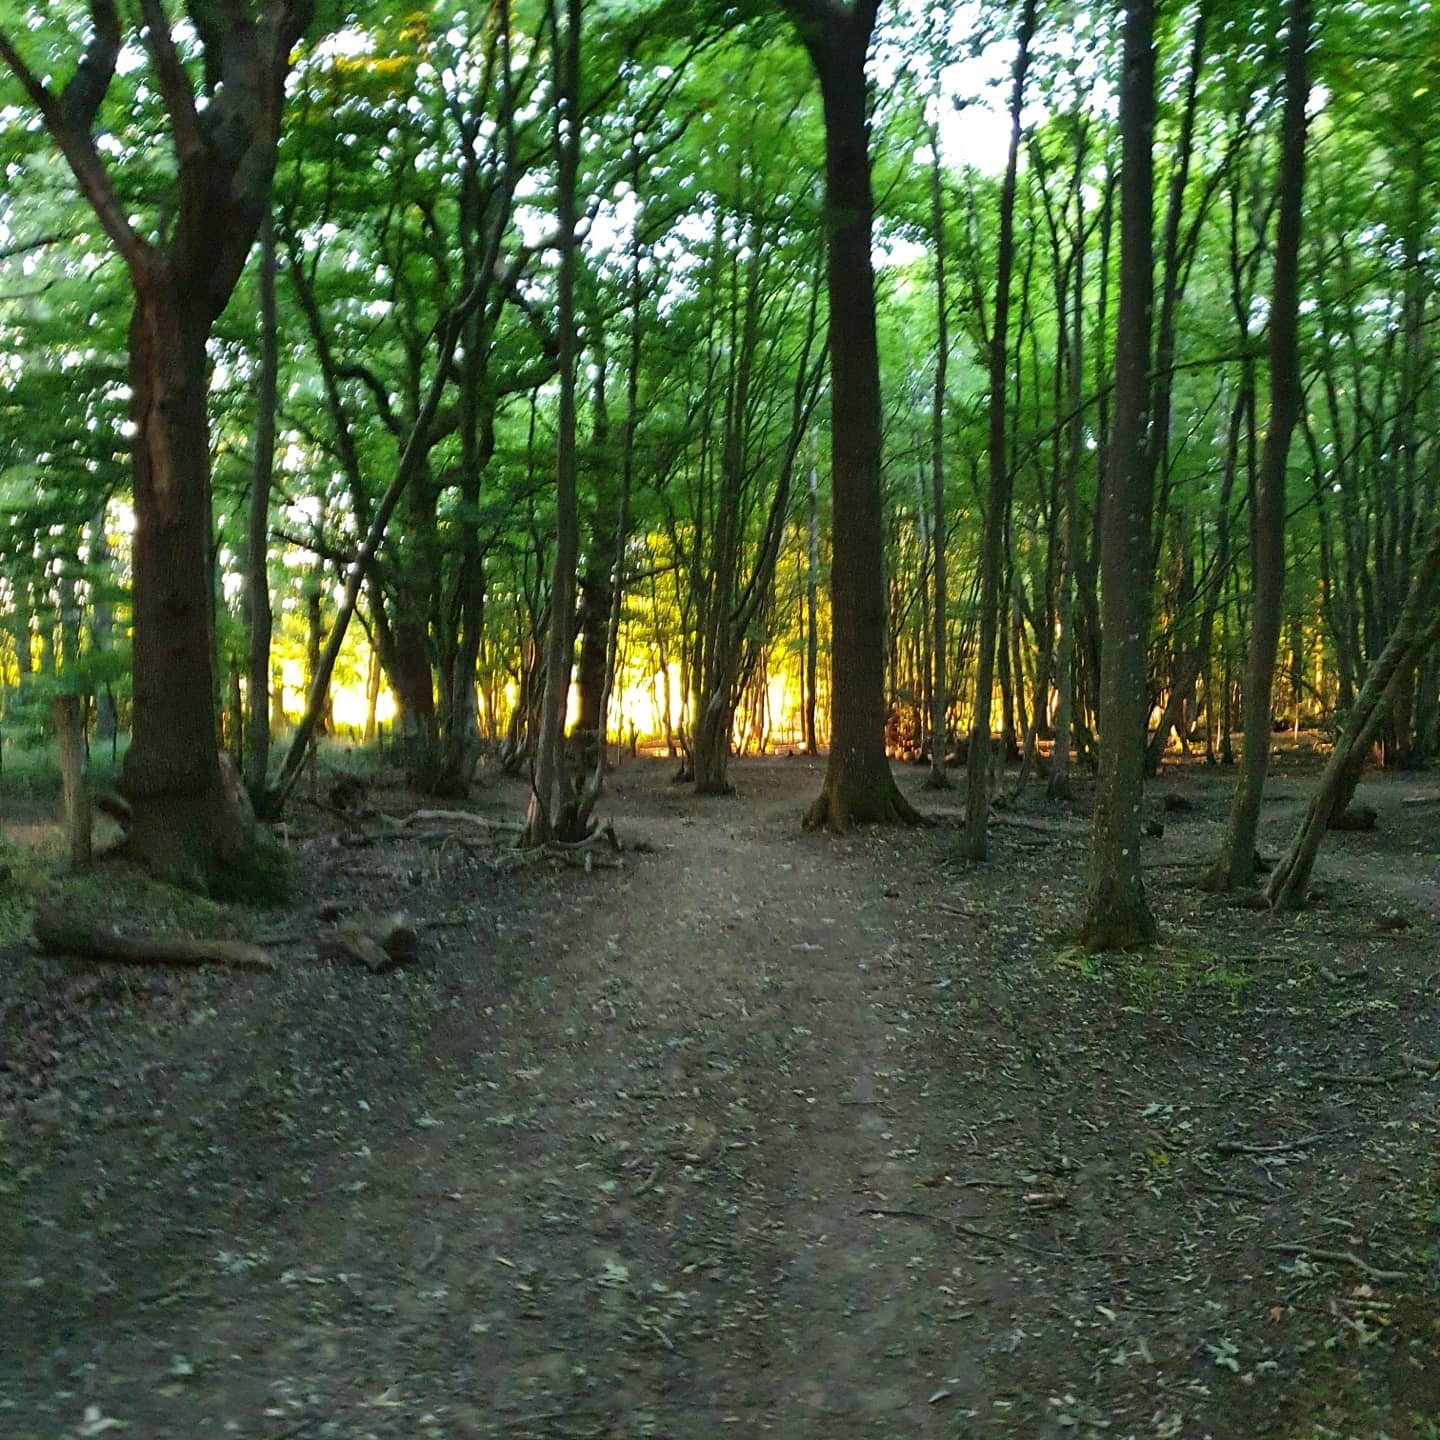 The woods in Wivelsfield